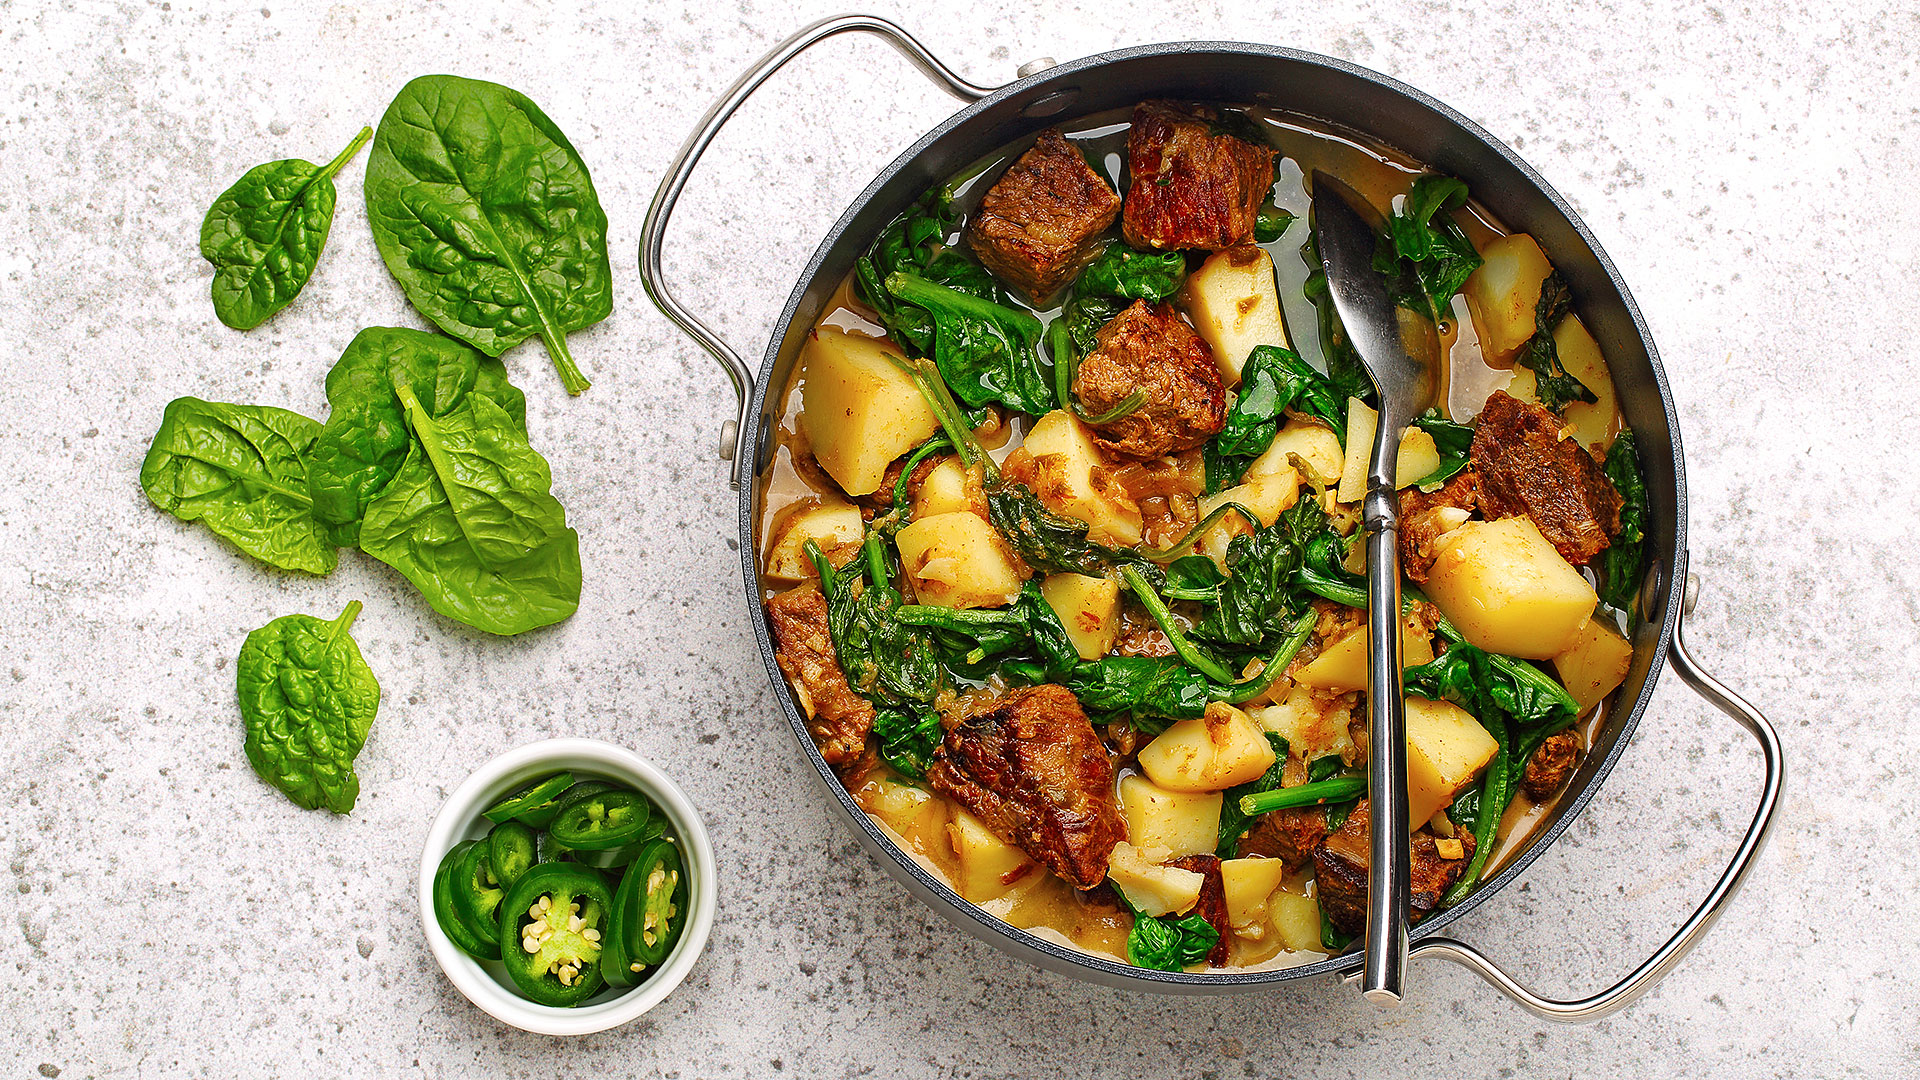 Spiced beef with spinach and potatoes in a skillet with sliced jalapenos and spinach leaves displayed on the counter beside it.